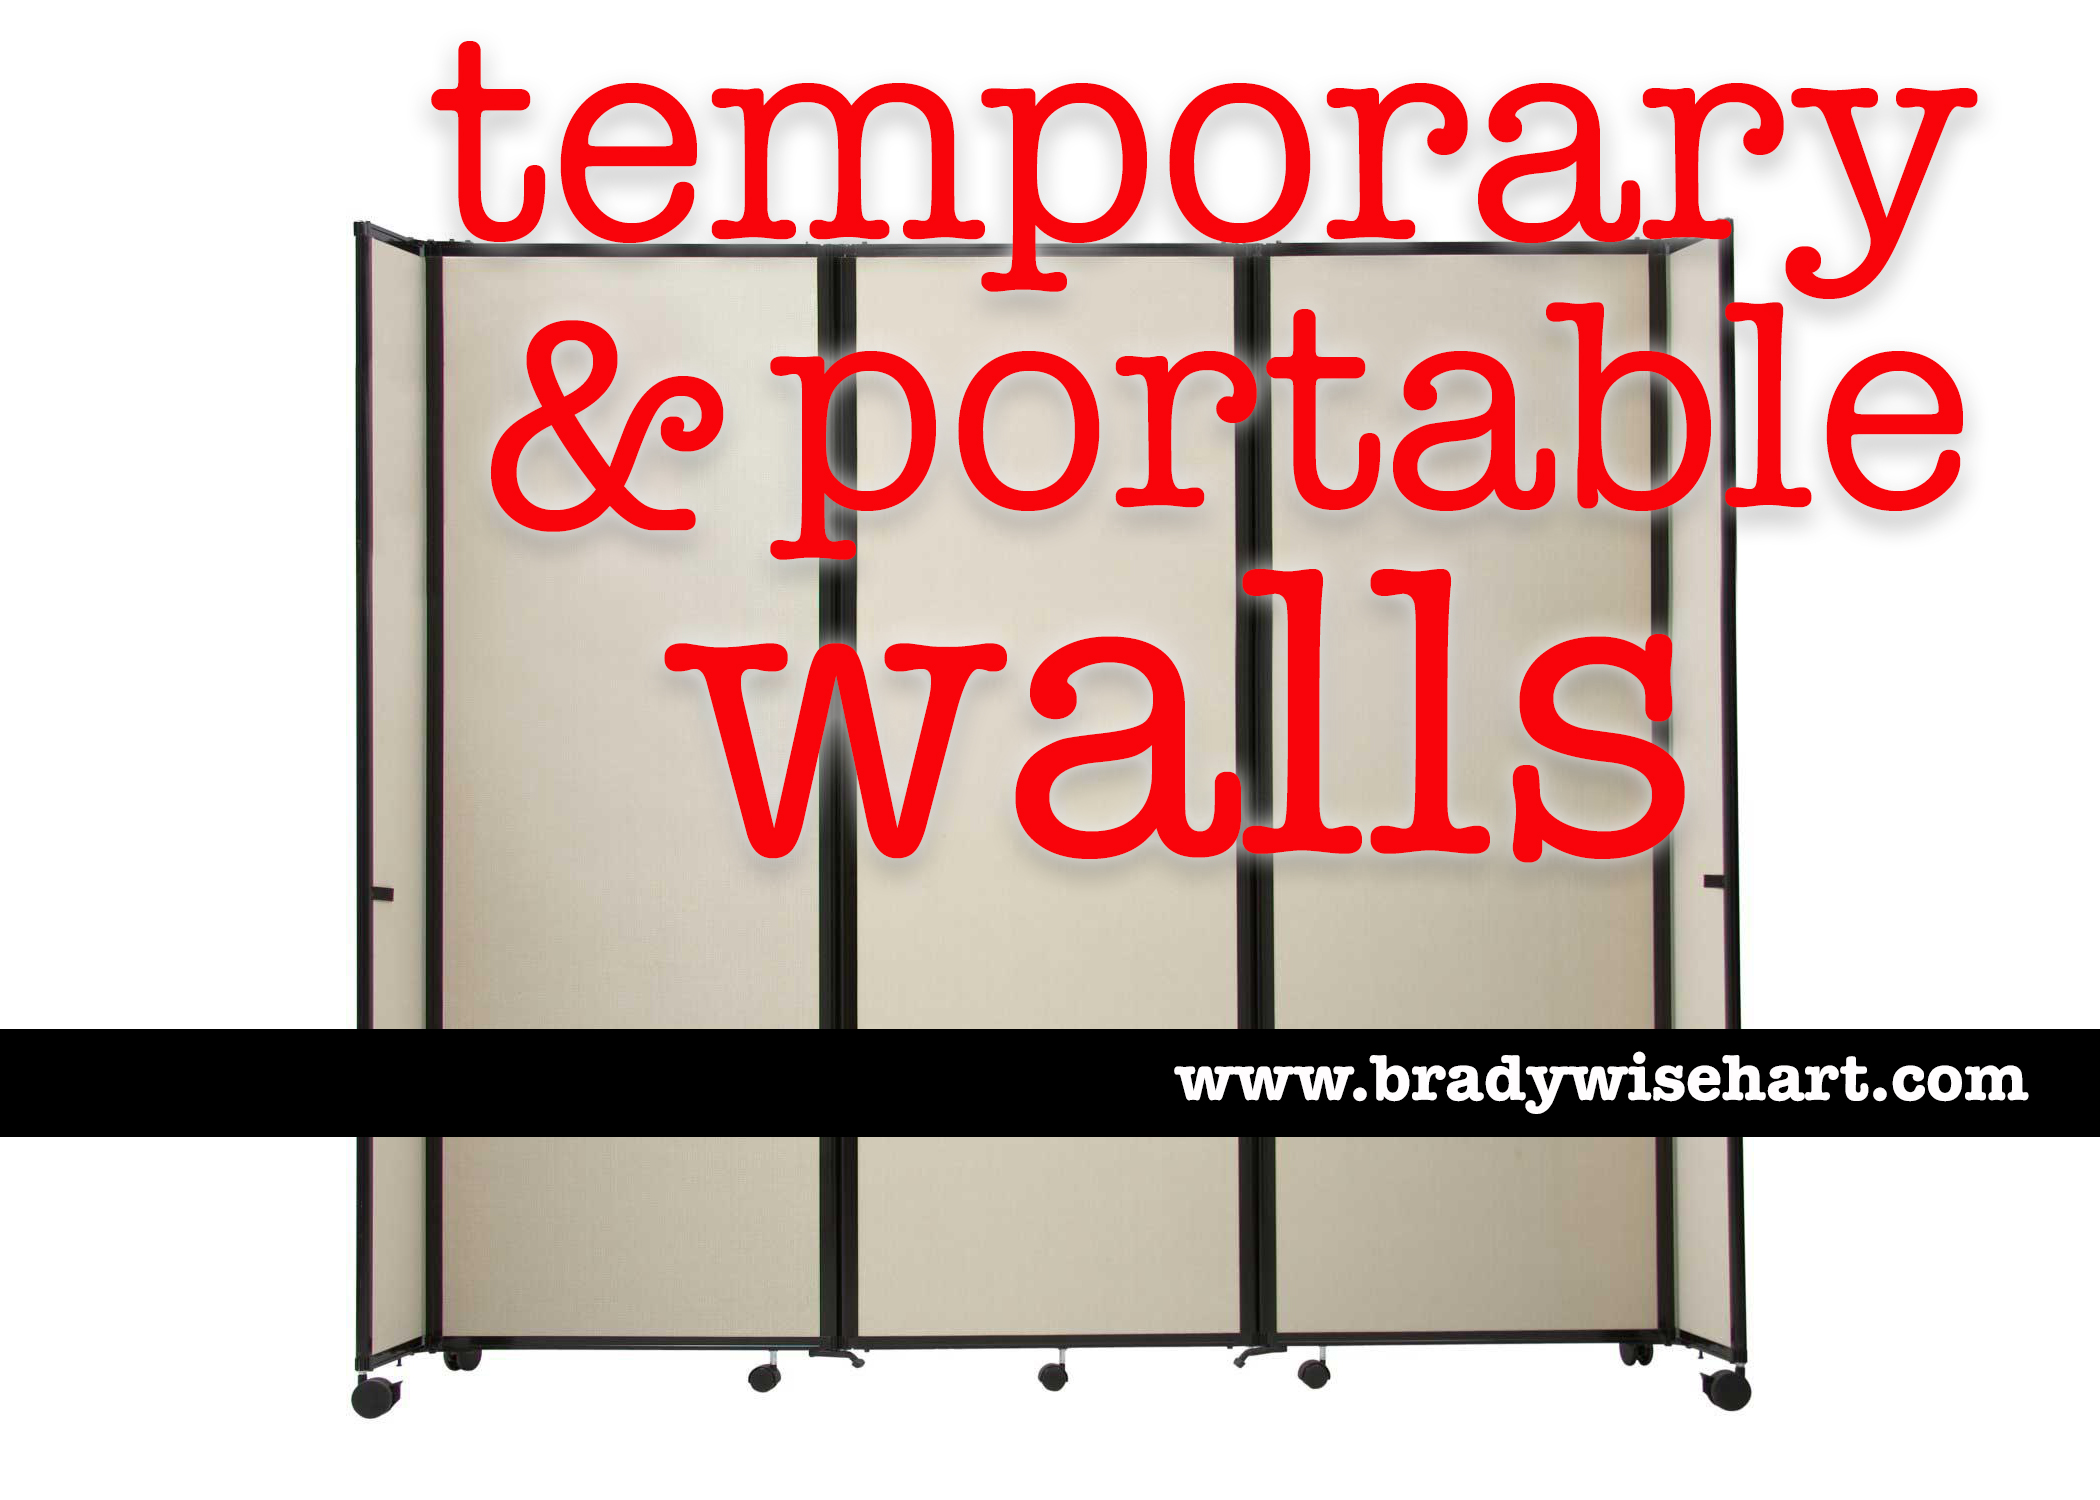 temporary & portable walls